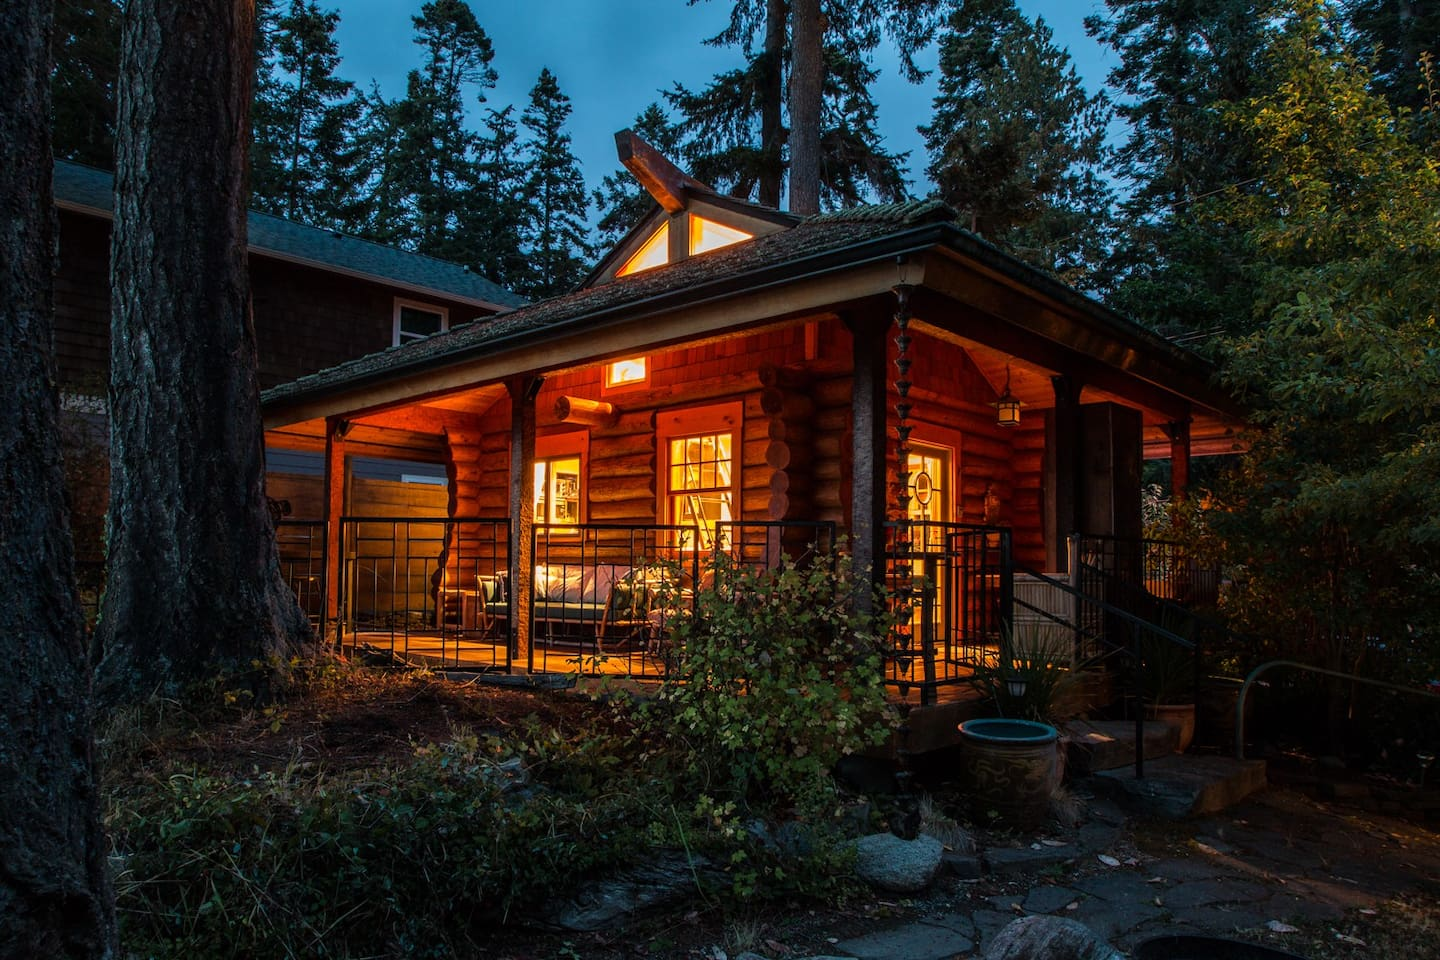 The Coho Cabin- designed by Bo Miller and Mary Jayne Wiles.